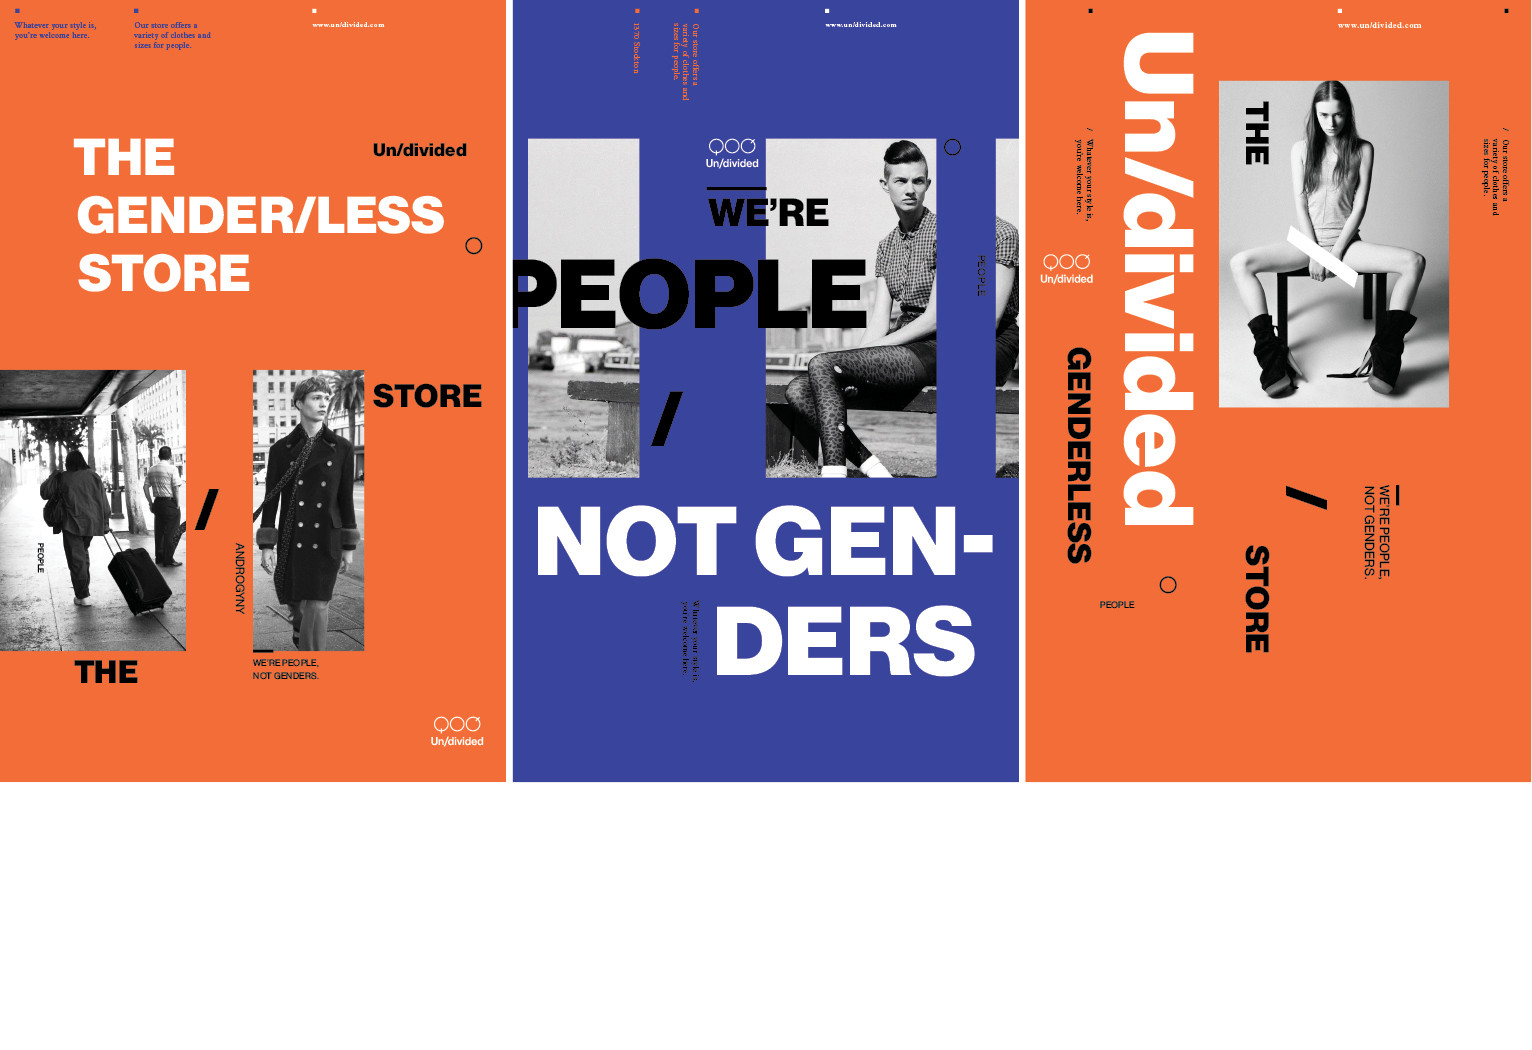 Un/divided Poster Series